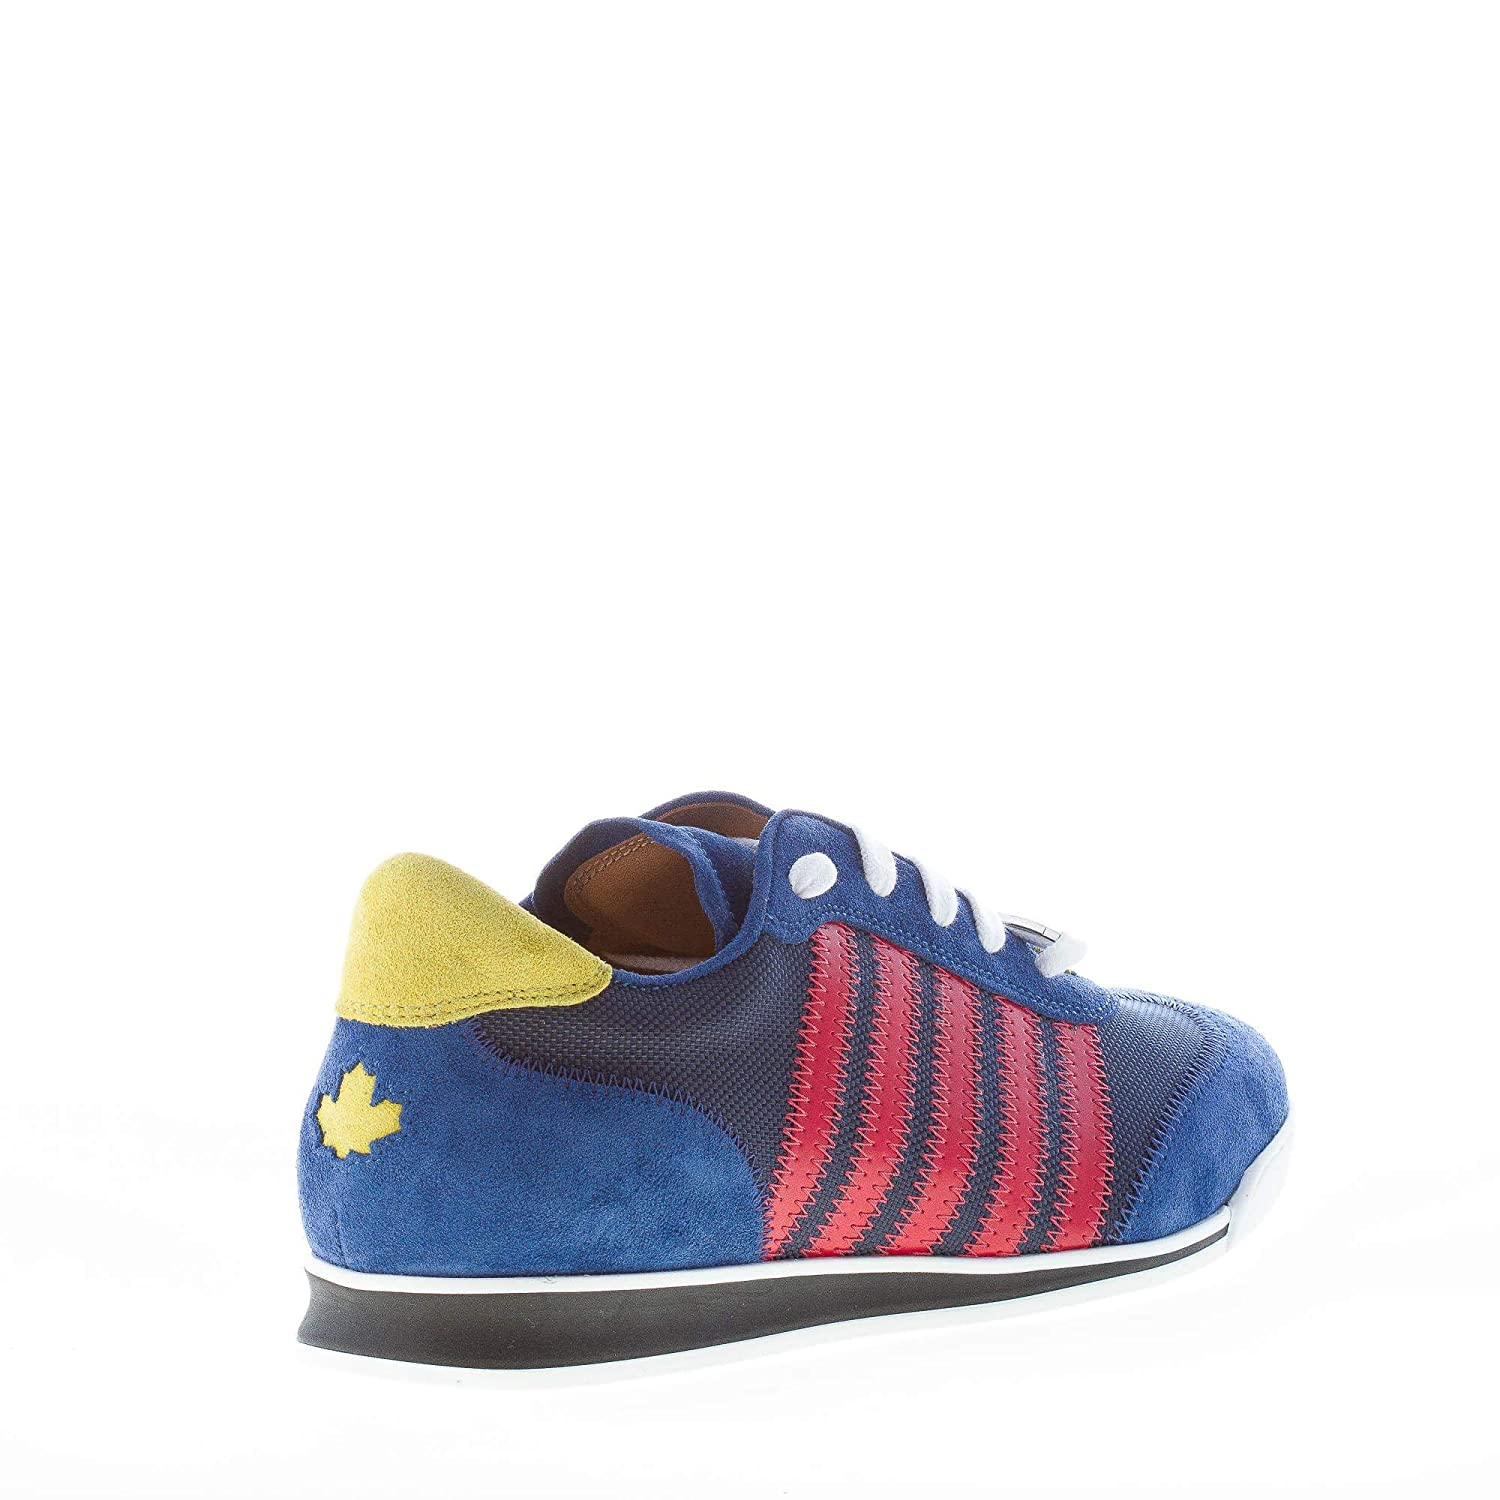 DSQUARED2 Men Shoes New Runner Blue Suede Nylon Sneaker red Stripes  W17SN419  Amazon.co.uk  Shoes   Bags 8a42f3955f87